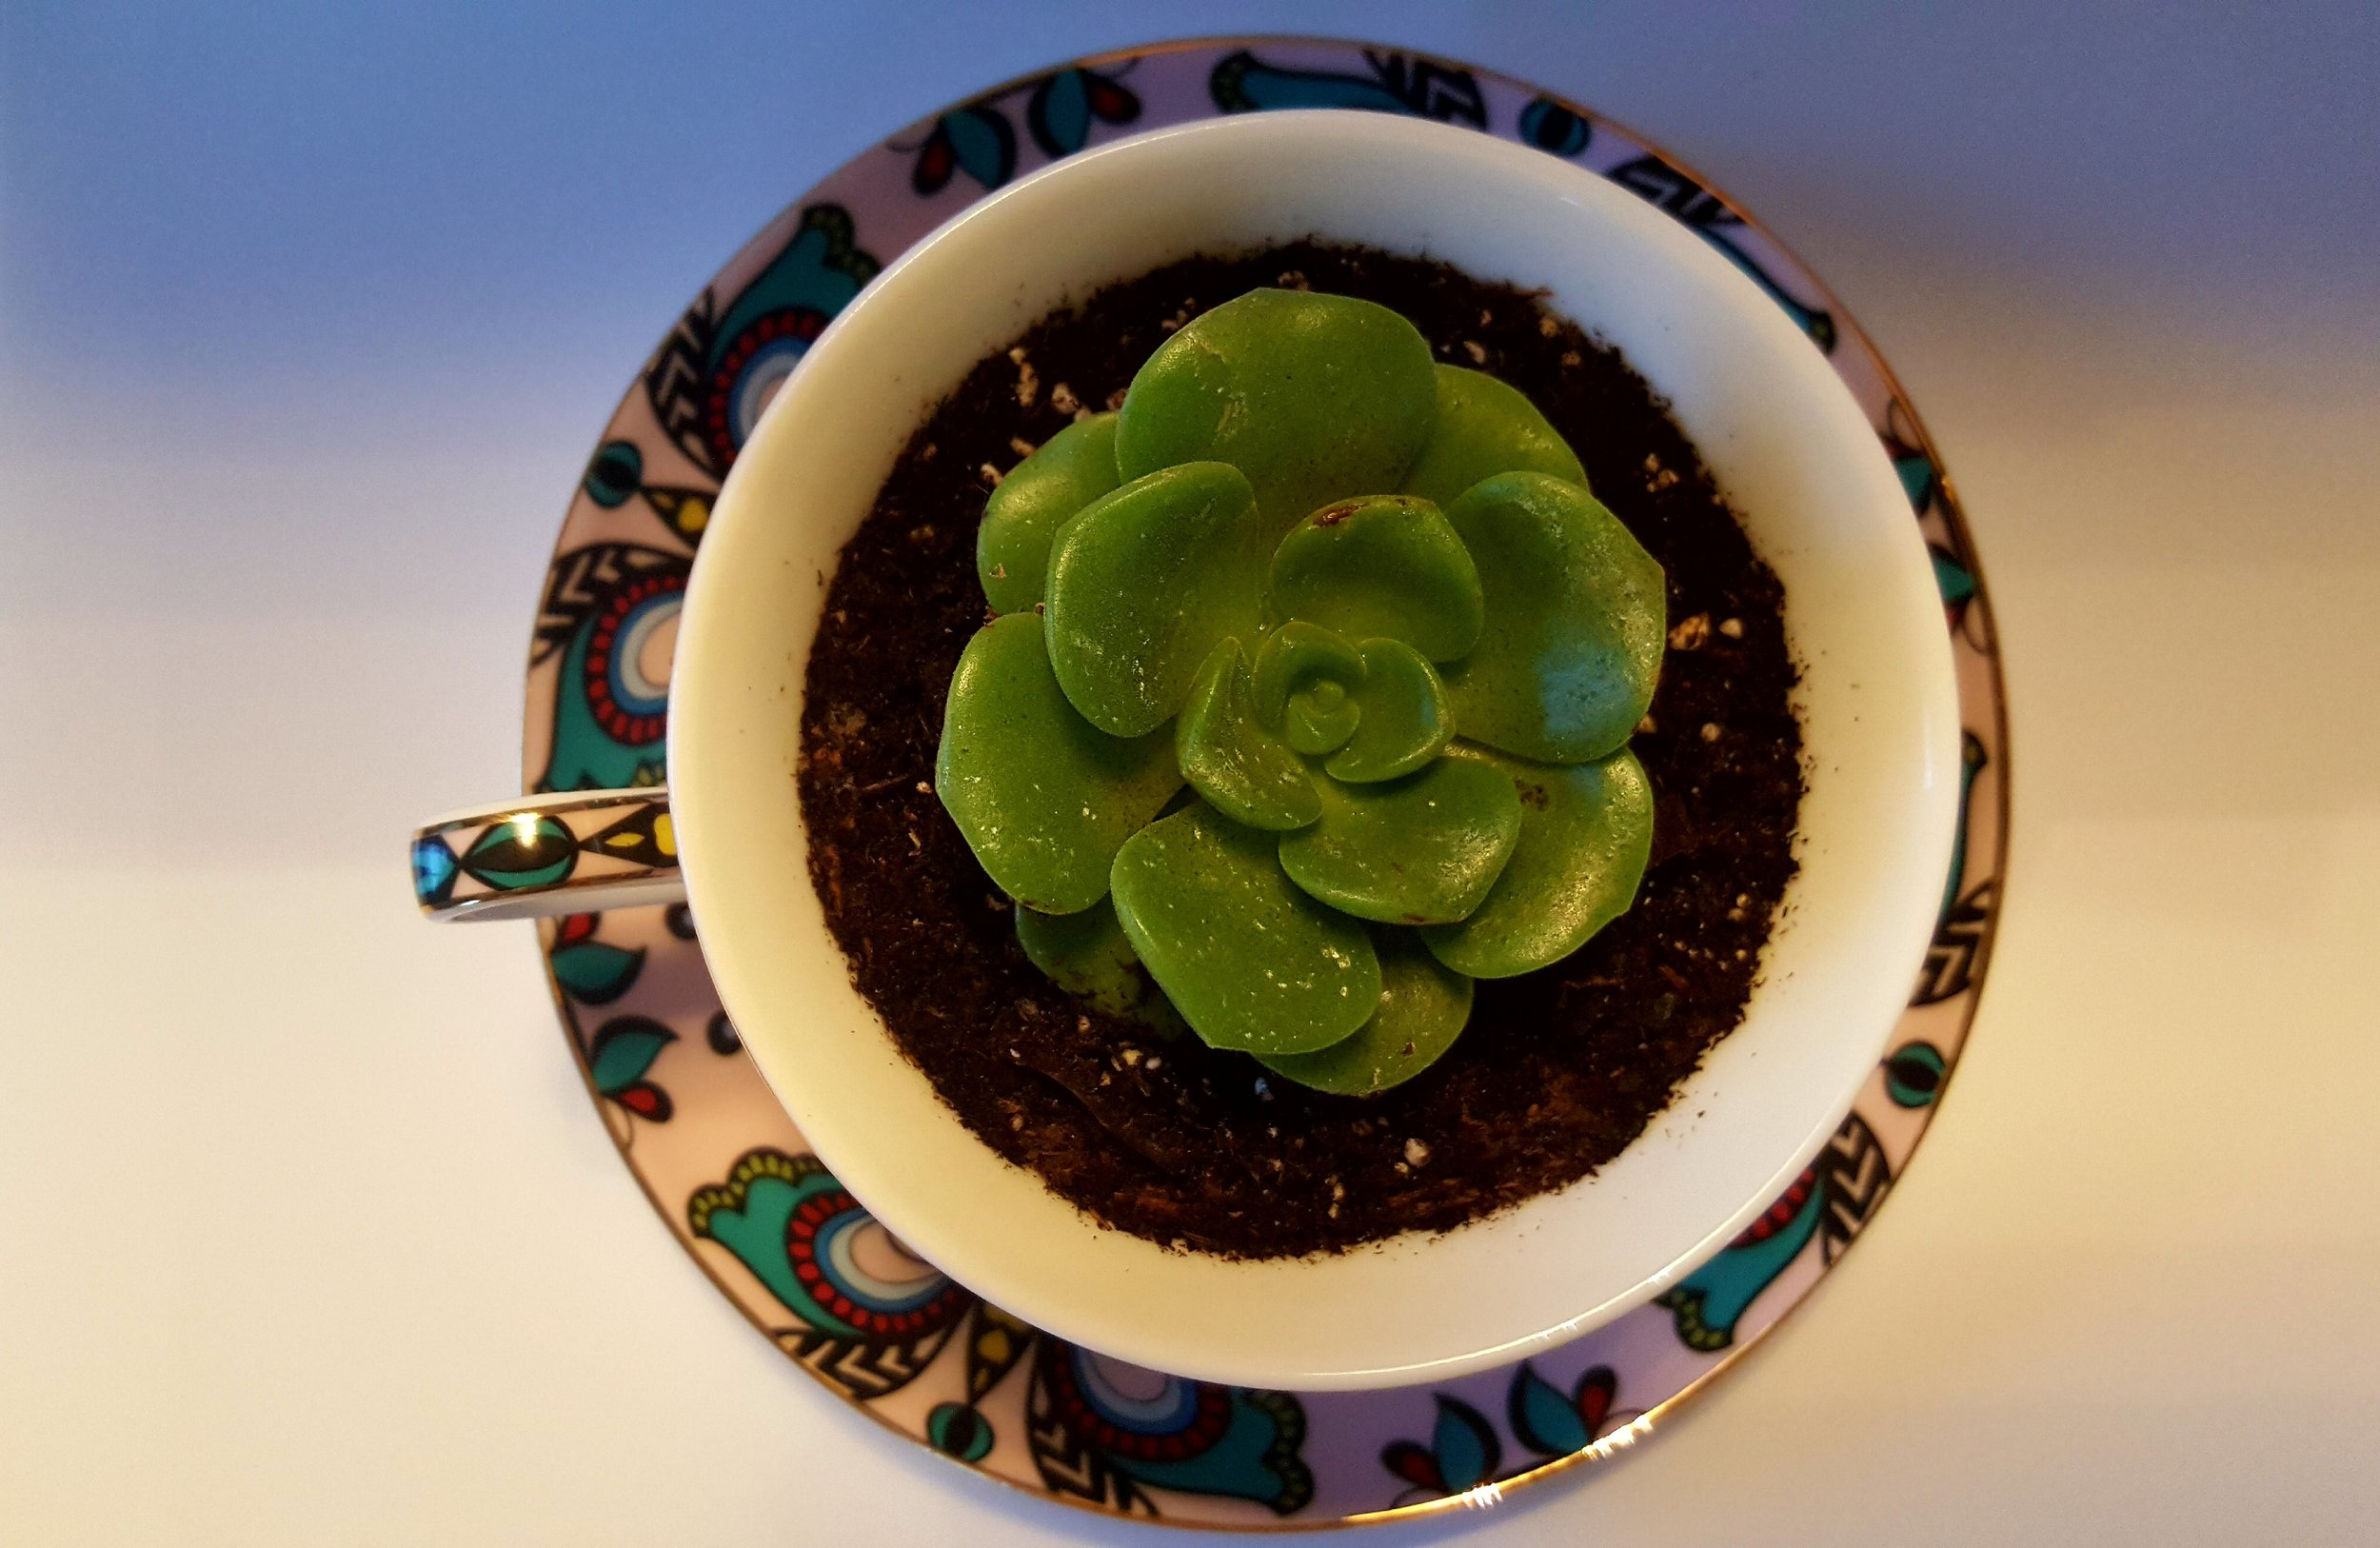 TEACUPS & SUCCULENTS - FOR THE OFFICE OR A SPECIAL GIFT FOR A SPECIAL SOMEONE